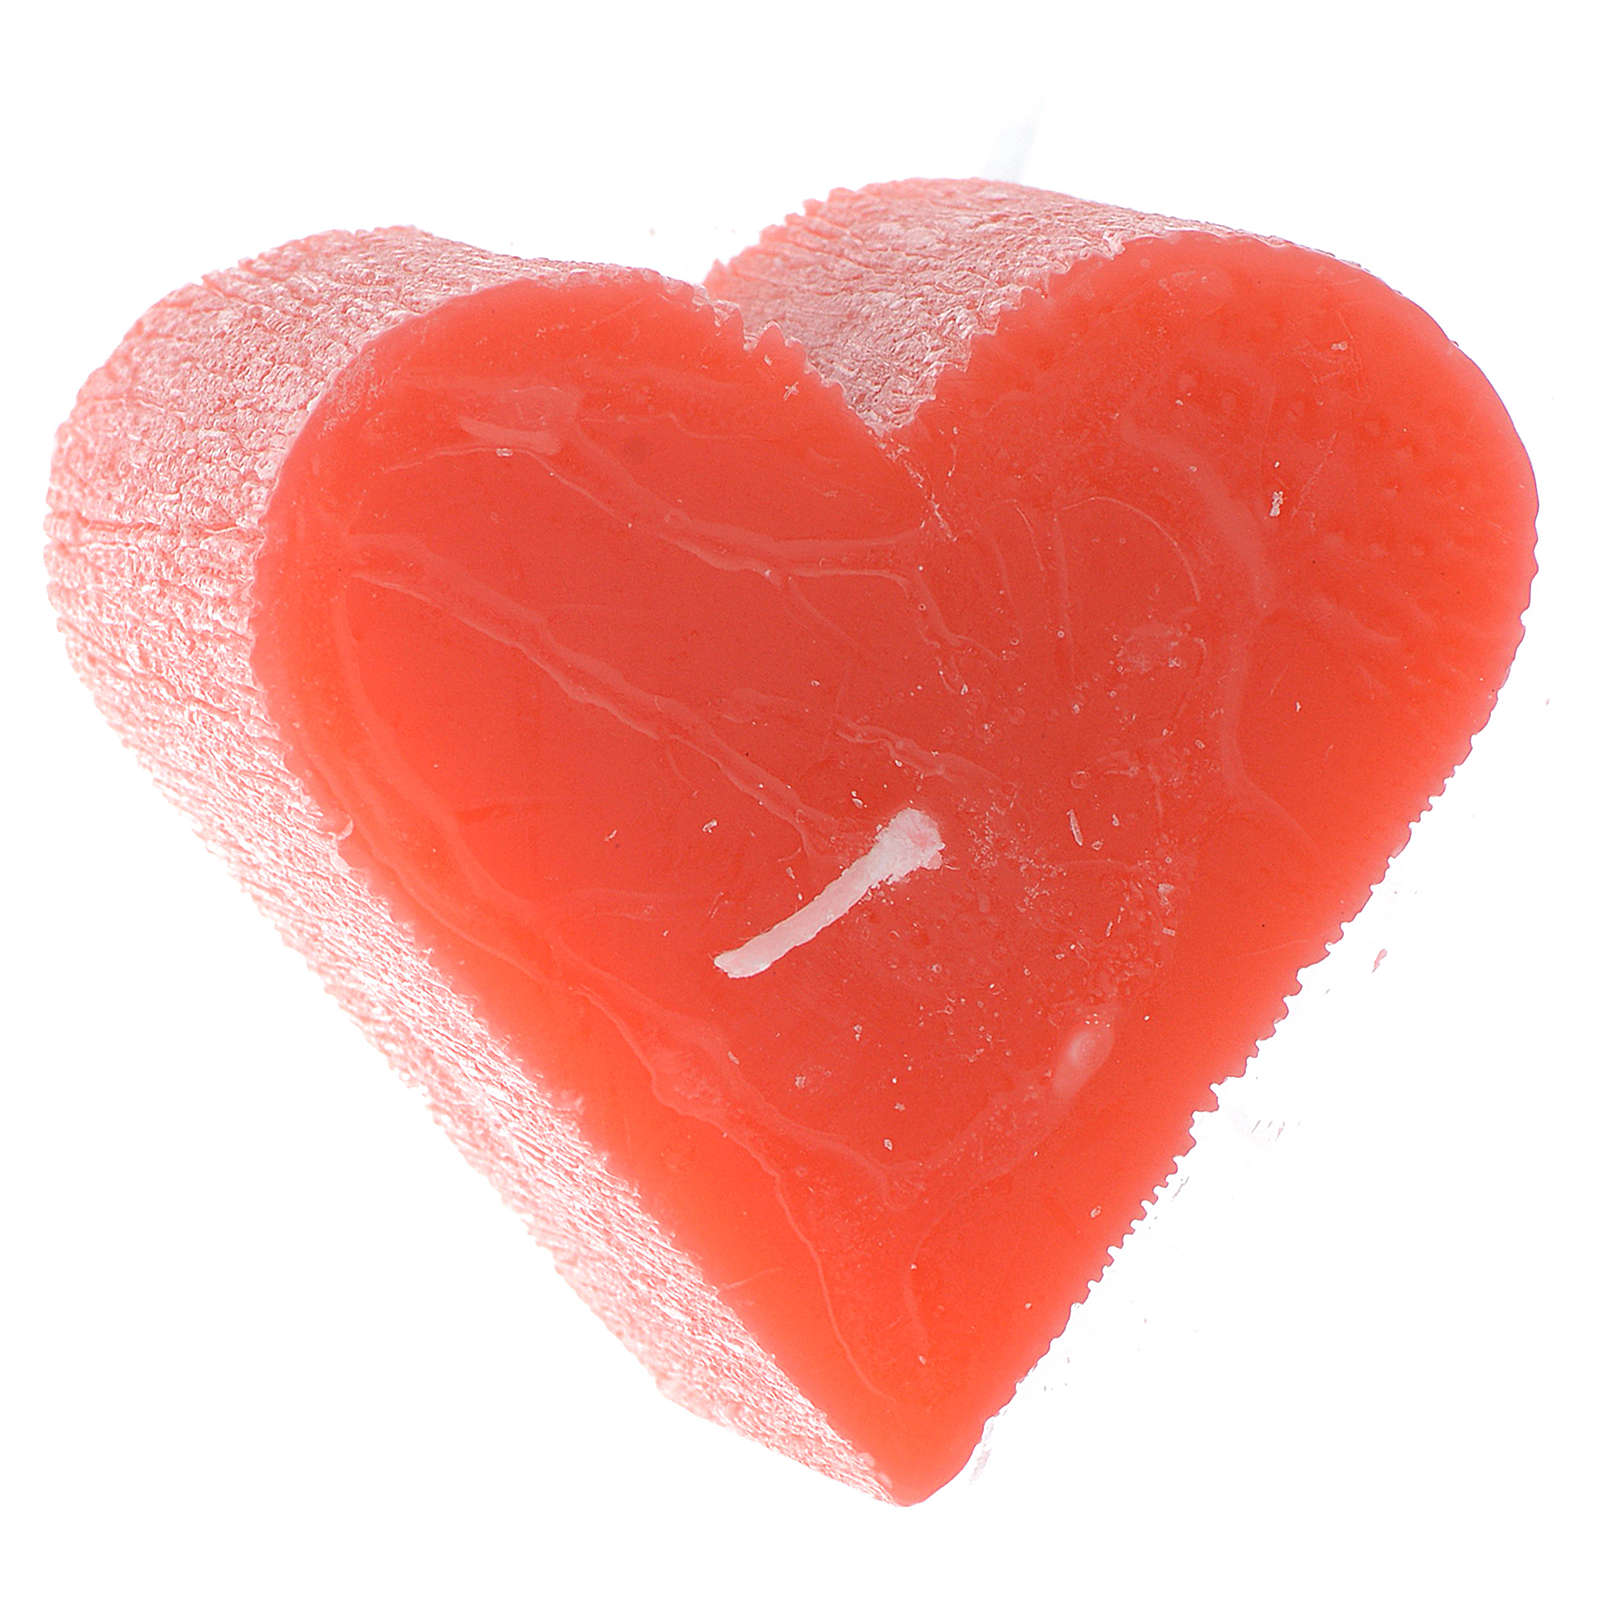 Perfumed candle, heart shape 55x65mm 3